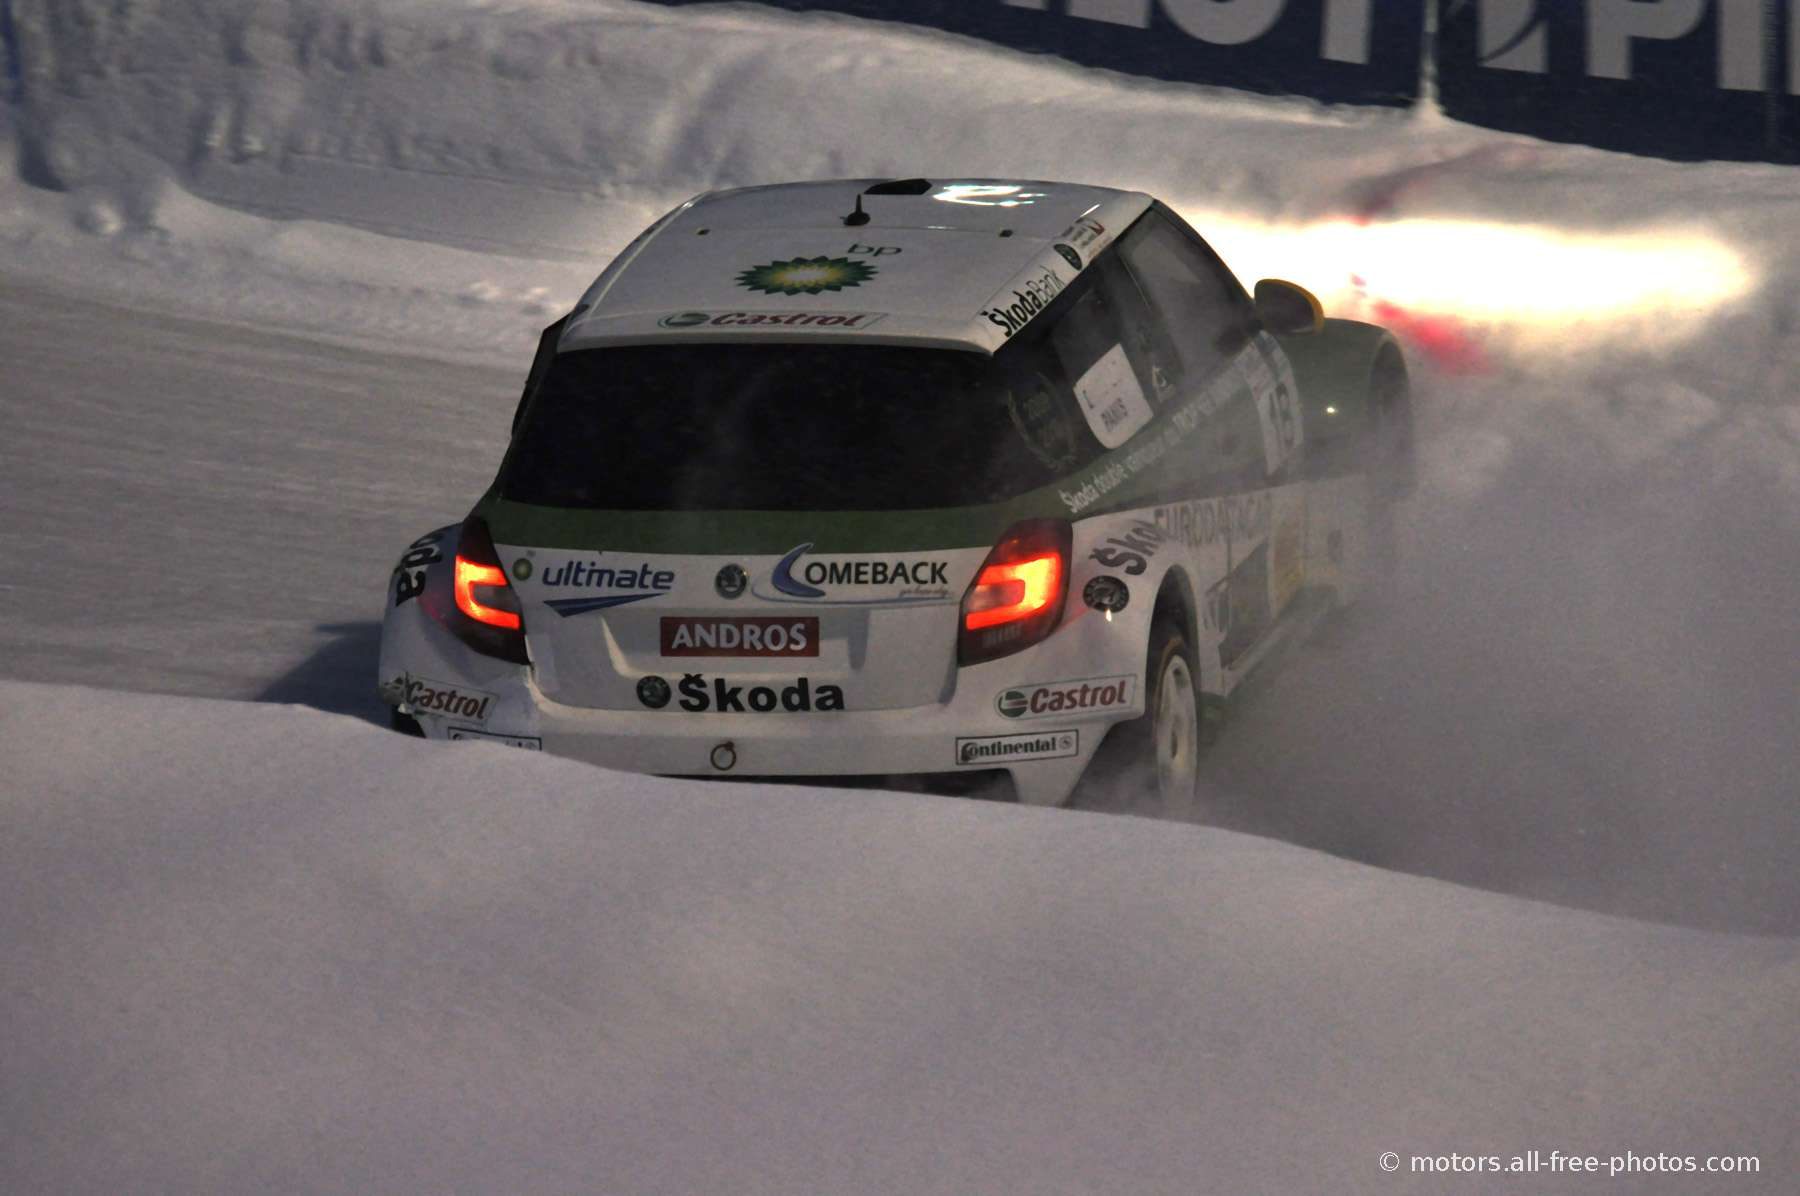 Olivier Panis - Team Skoda / AS events - Skoda Fabia